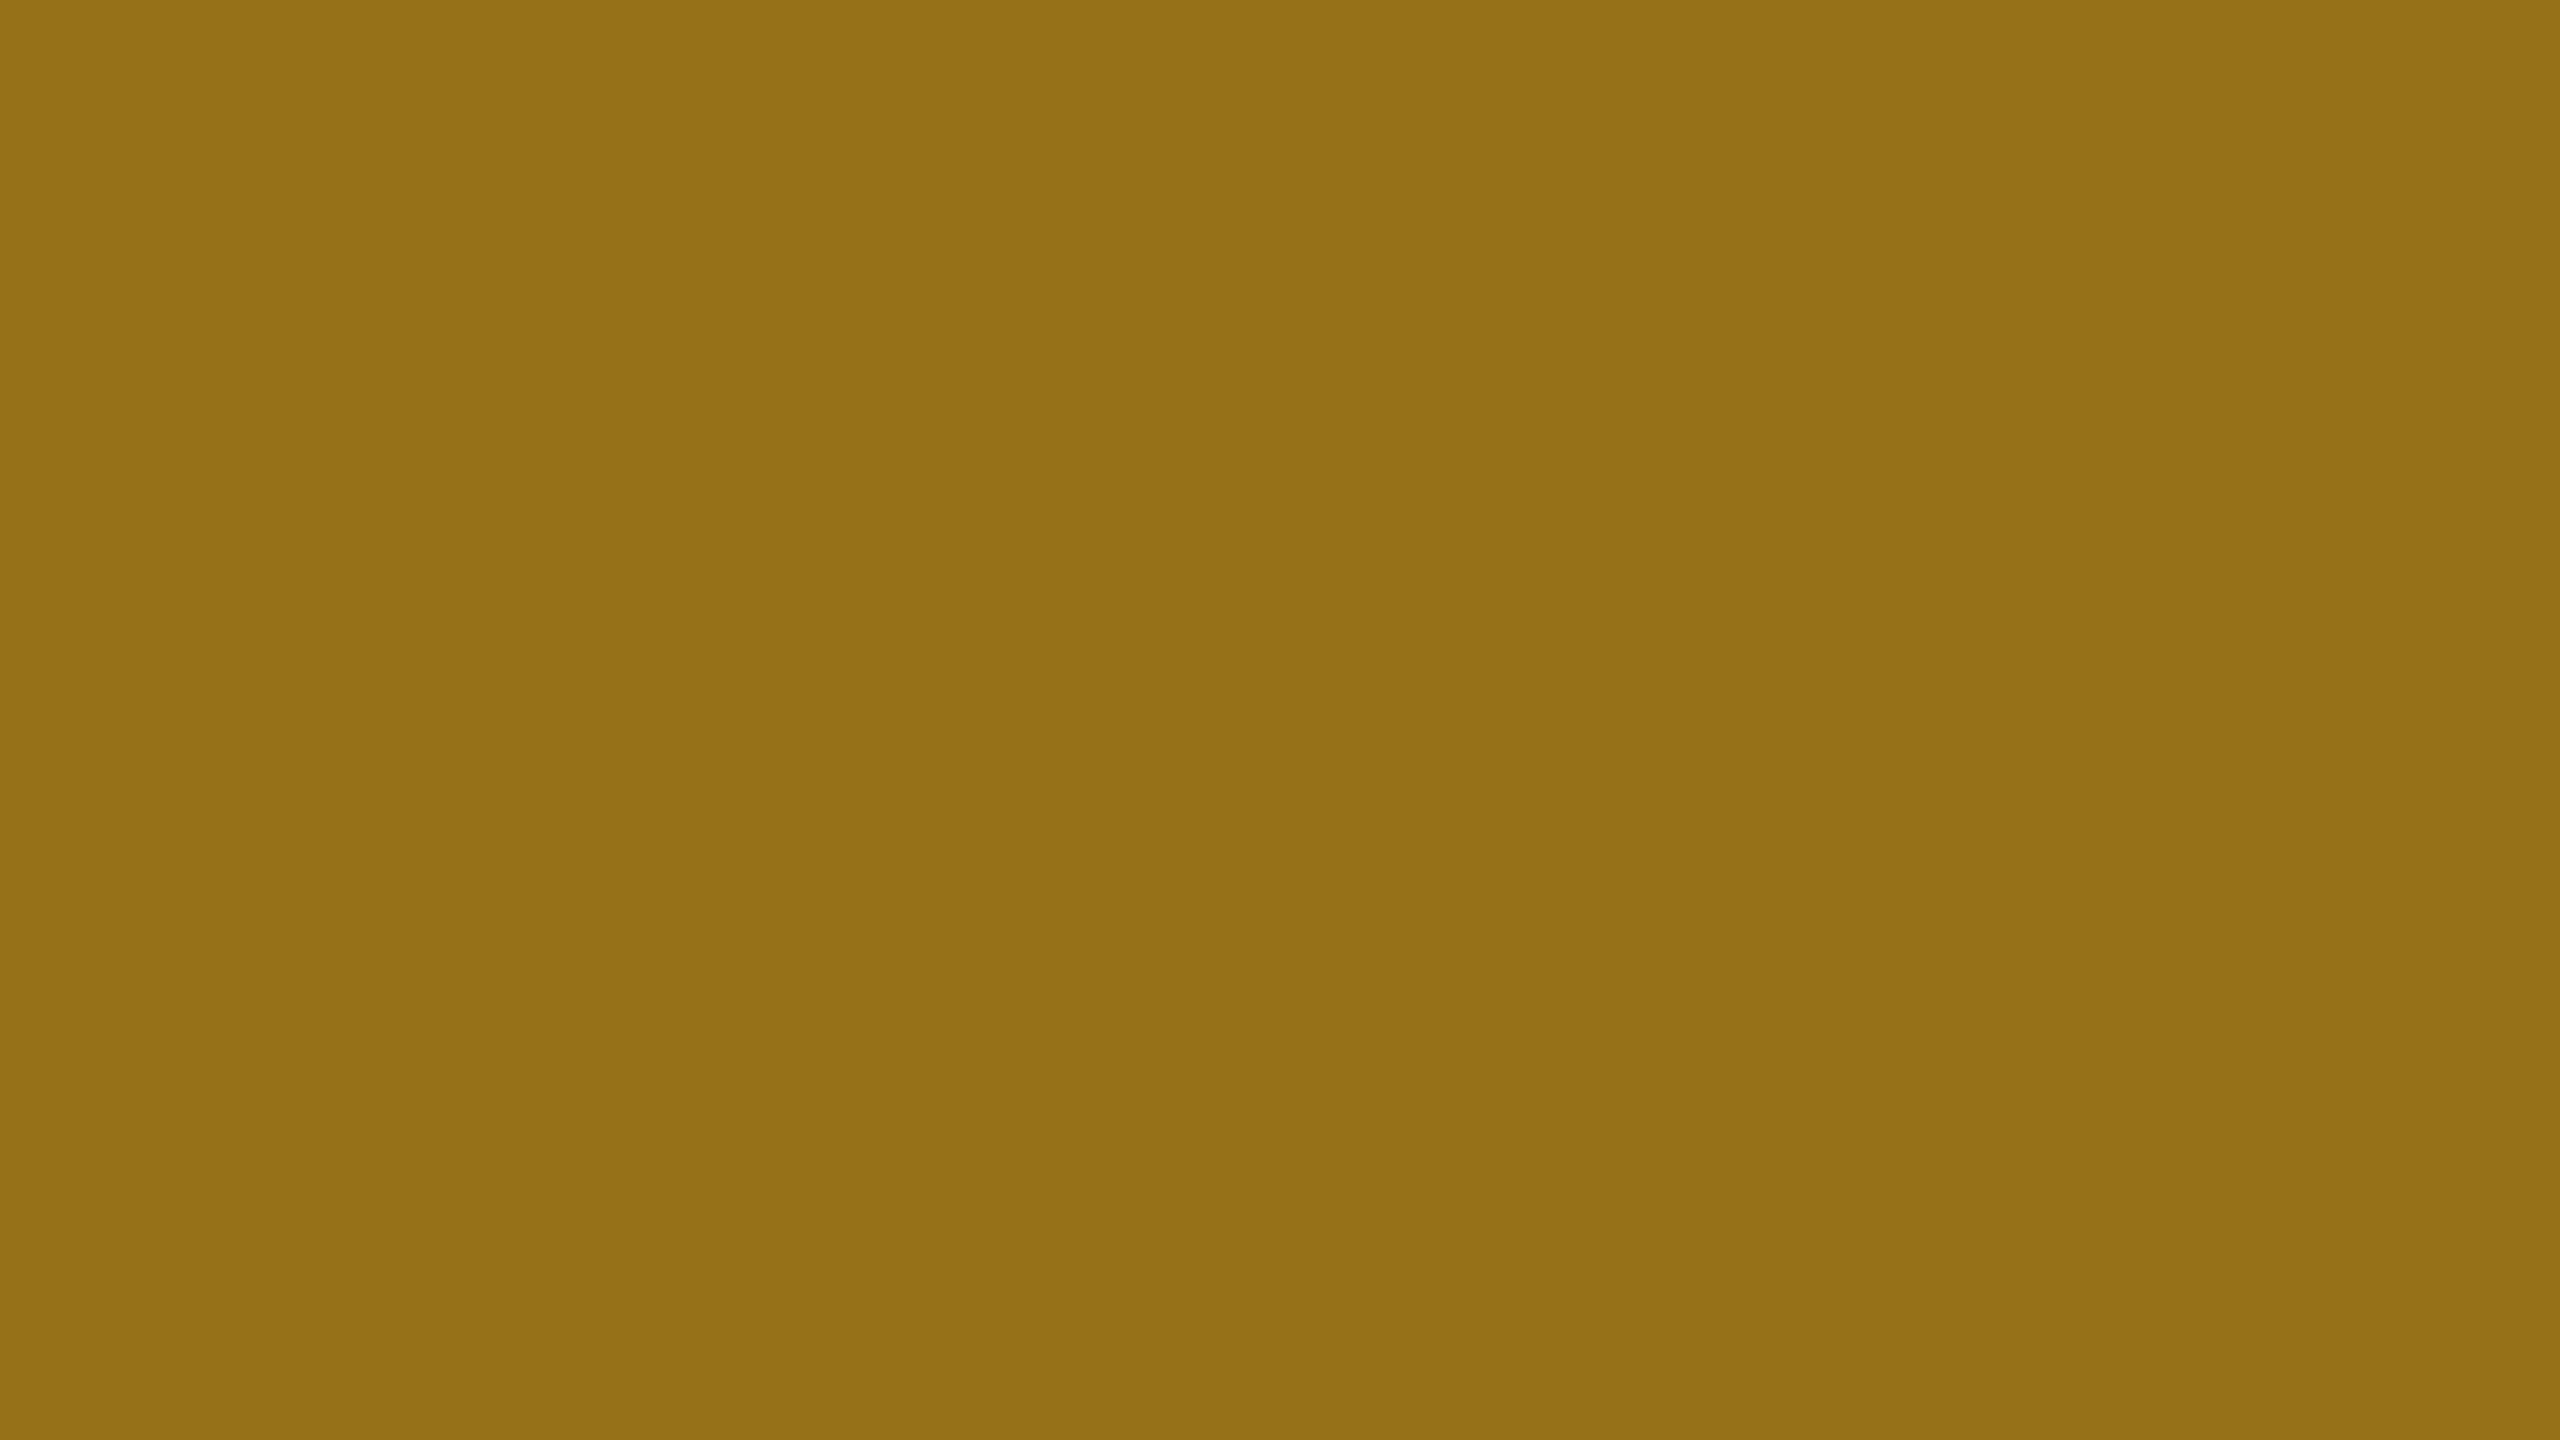 2560x1440 Mode Beige Solid Color Background